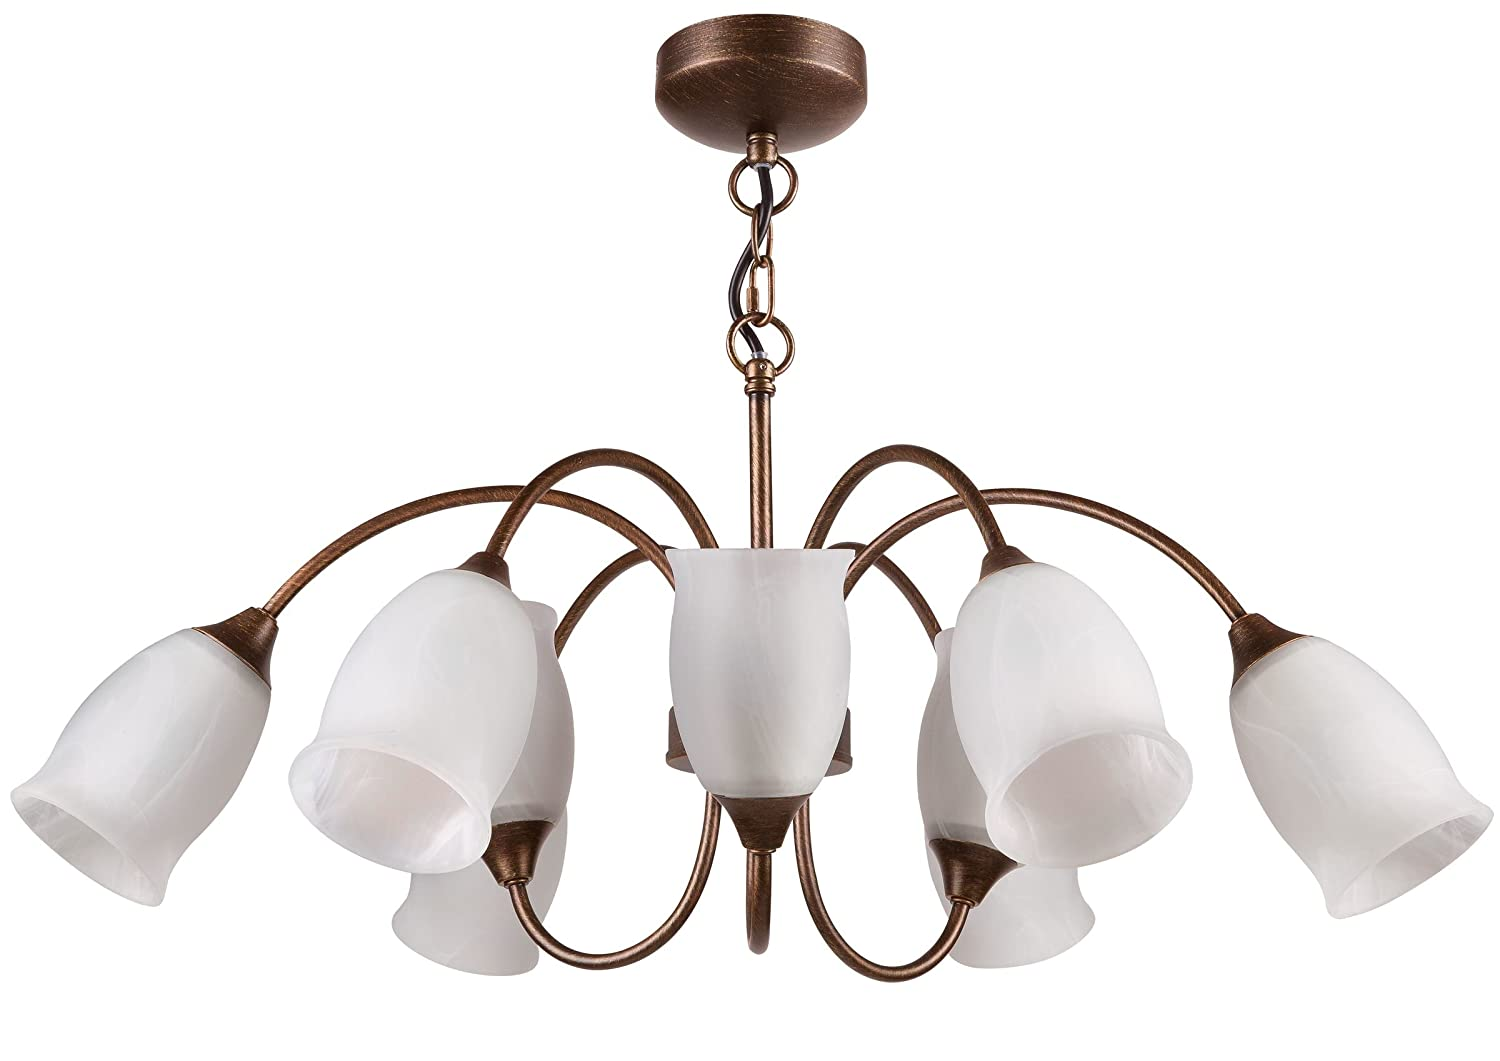 Buy philips 30920 15 watt tulip chandelier light brown brush buy philips 30920 15 watt tulip chandelier light brown brush online at low prices in india amazon aloadofball Image collections